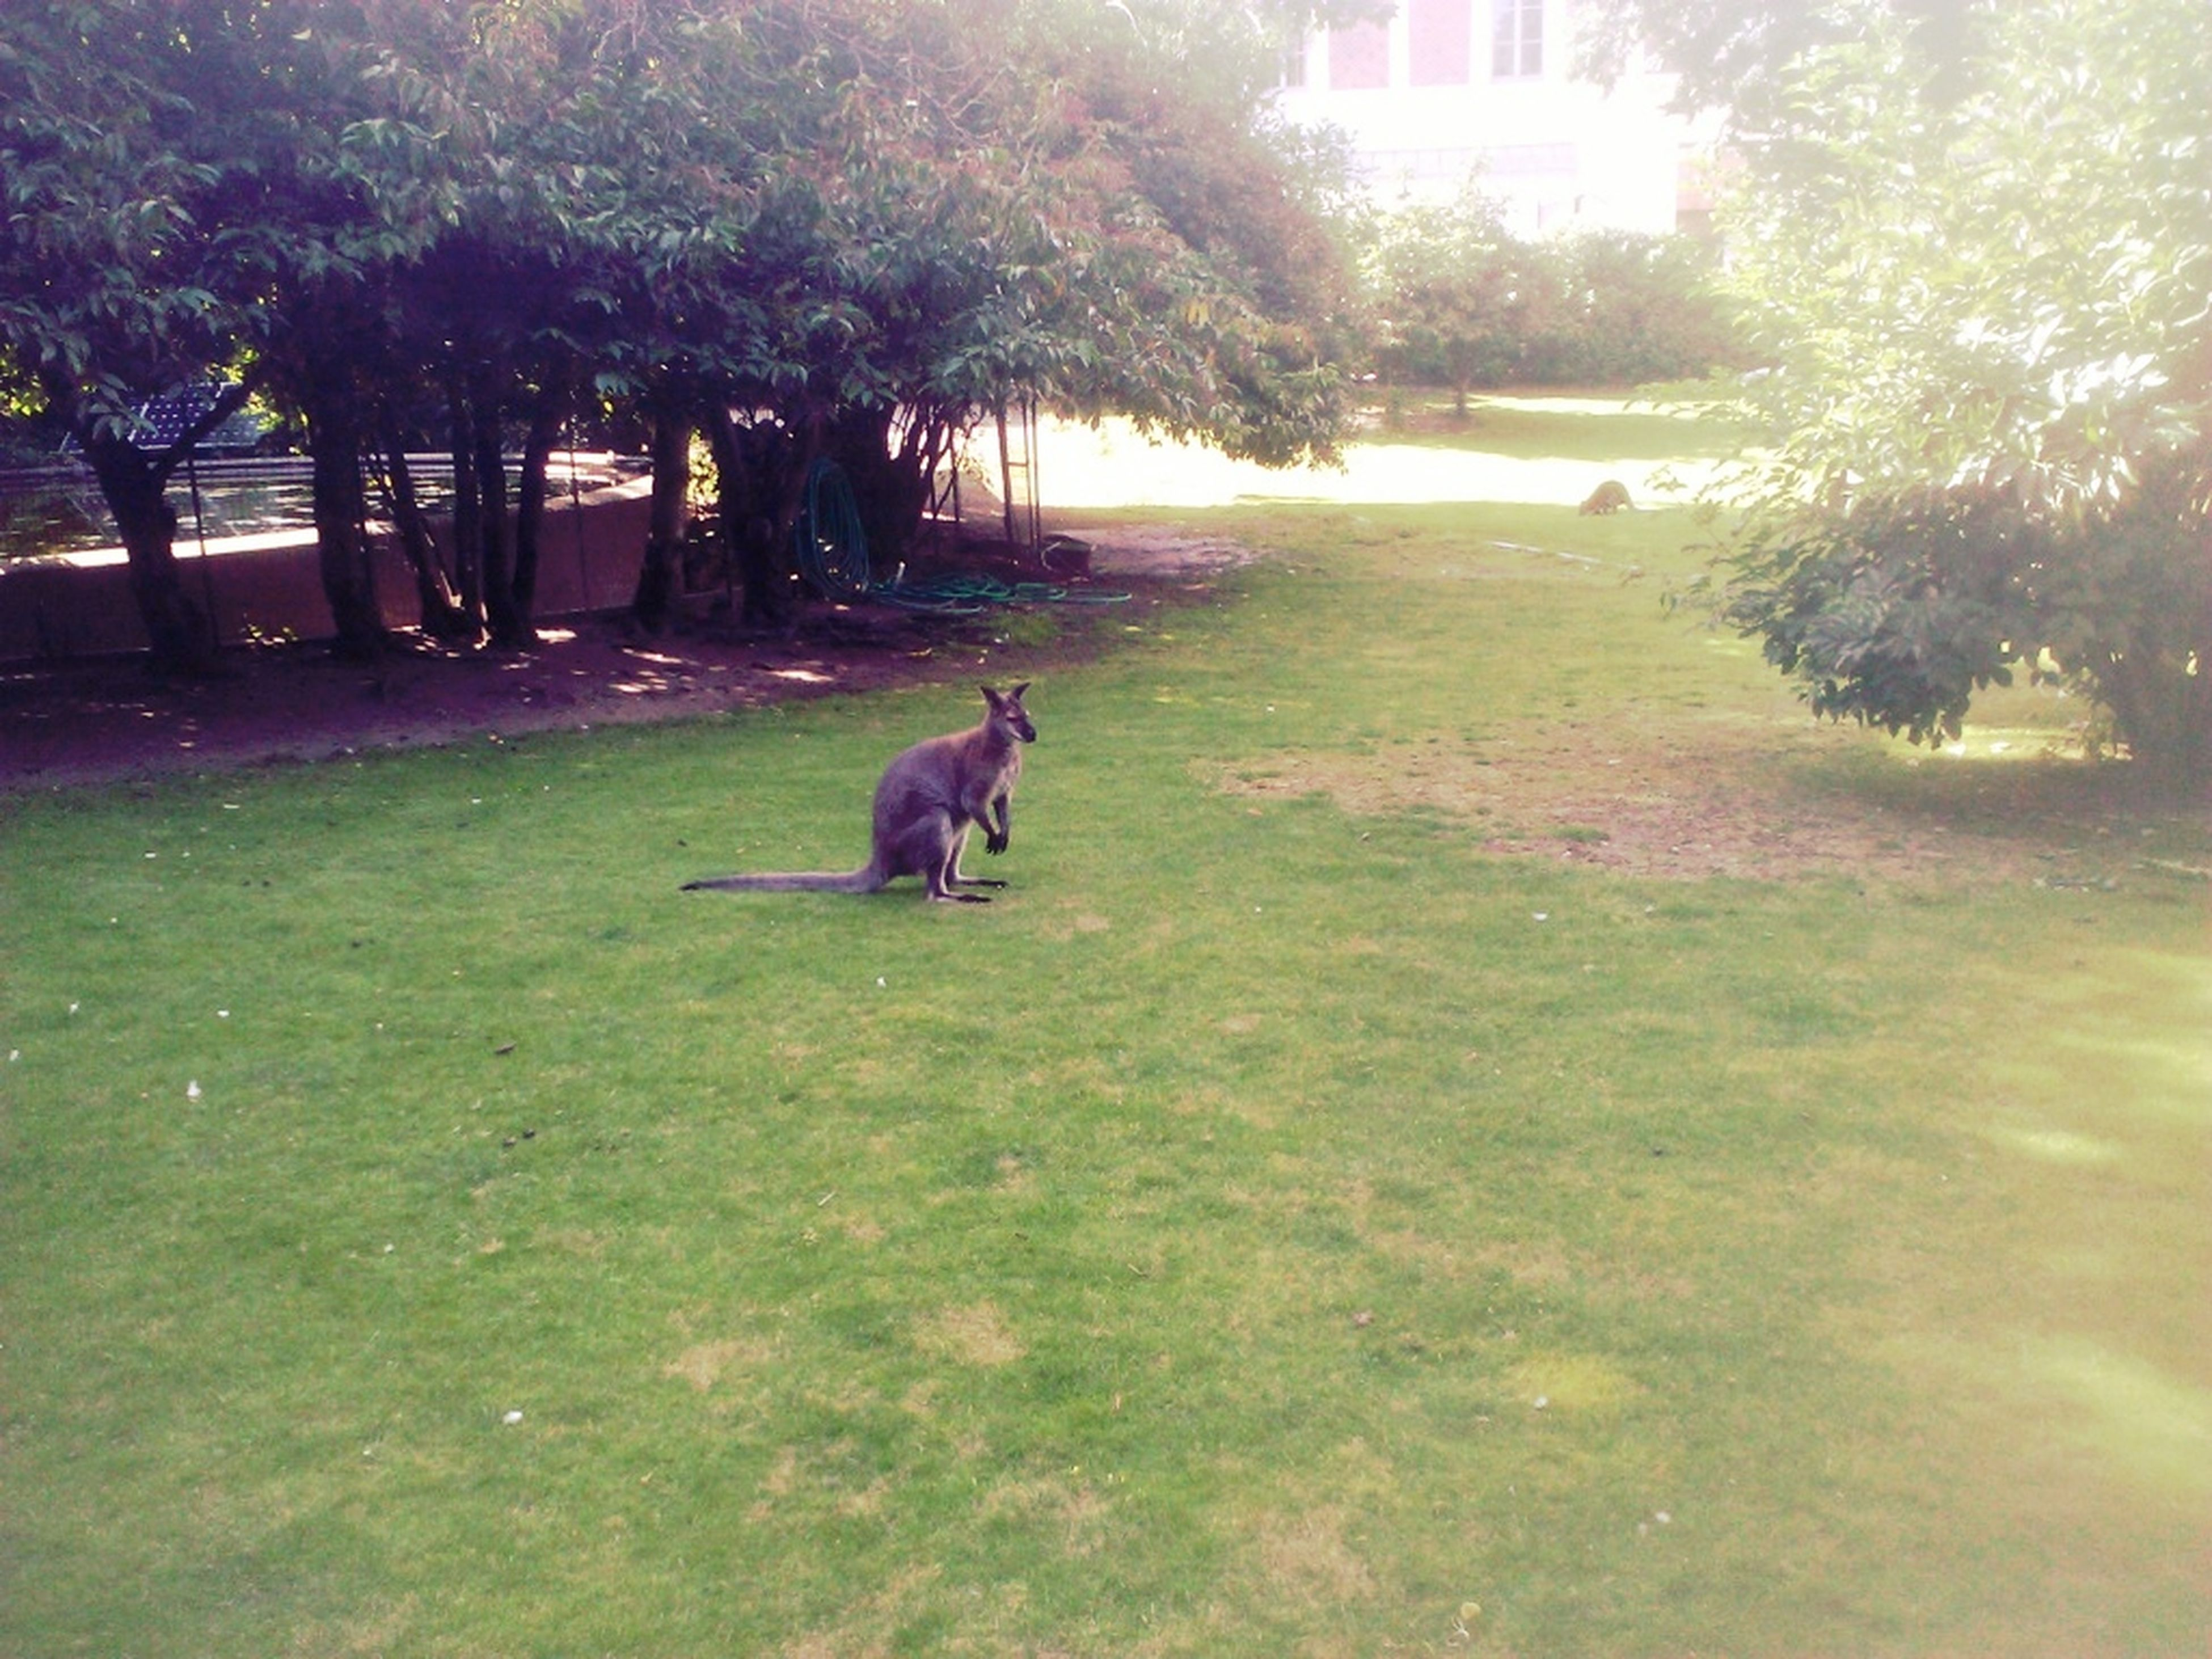 tree, grass, animal themes, domestic animals, pets, one animal, dog, mammal, park - man made space, field, sunlight, grassy, nature, growth, tranquility, sitting, relaxation, green color, day, lawn